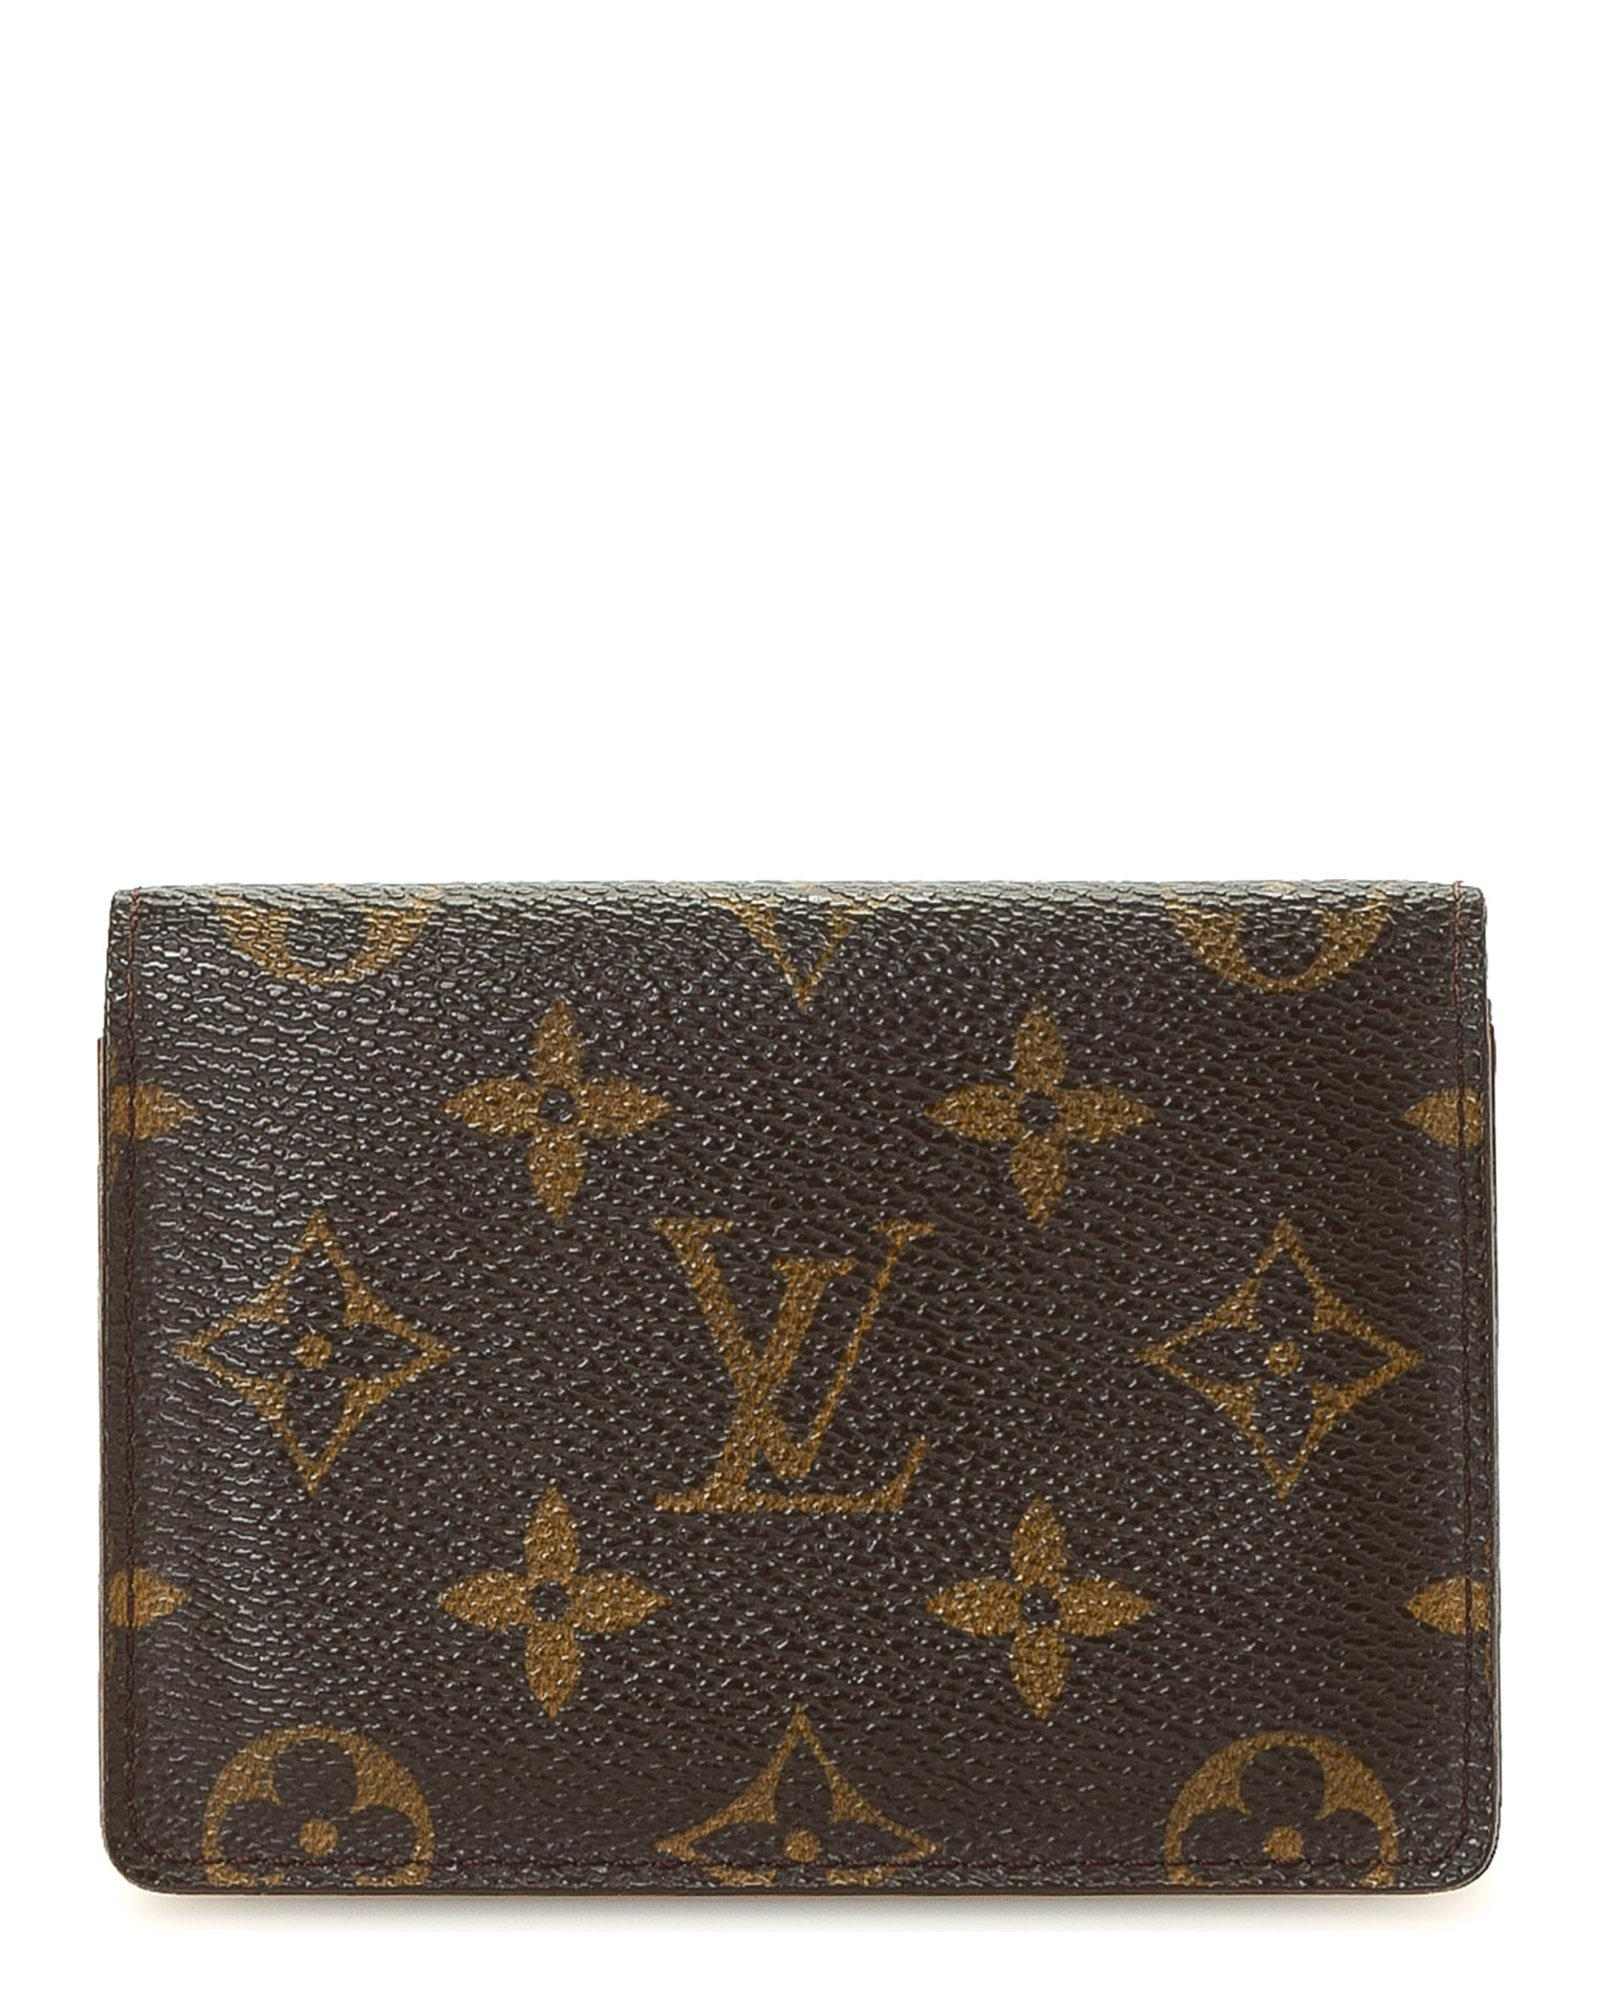 mens vintage louis vuitton